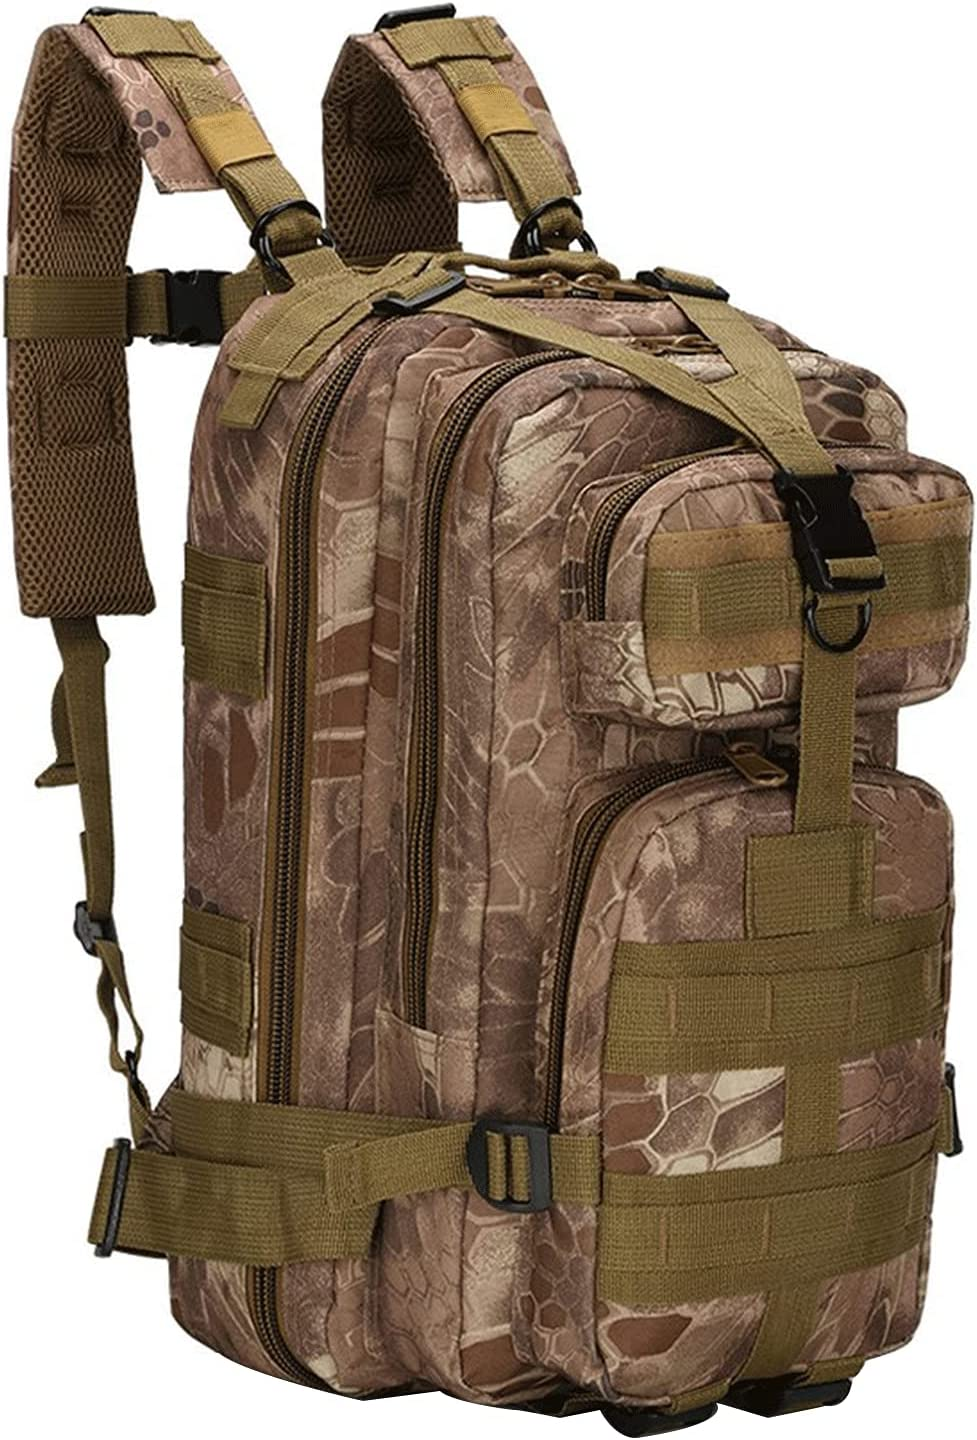 Wariter Backpack Sales for sale Large Assau Multifunctional Max 57% OFF Capacity